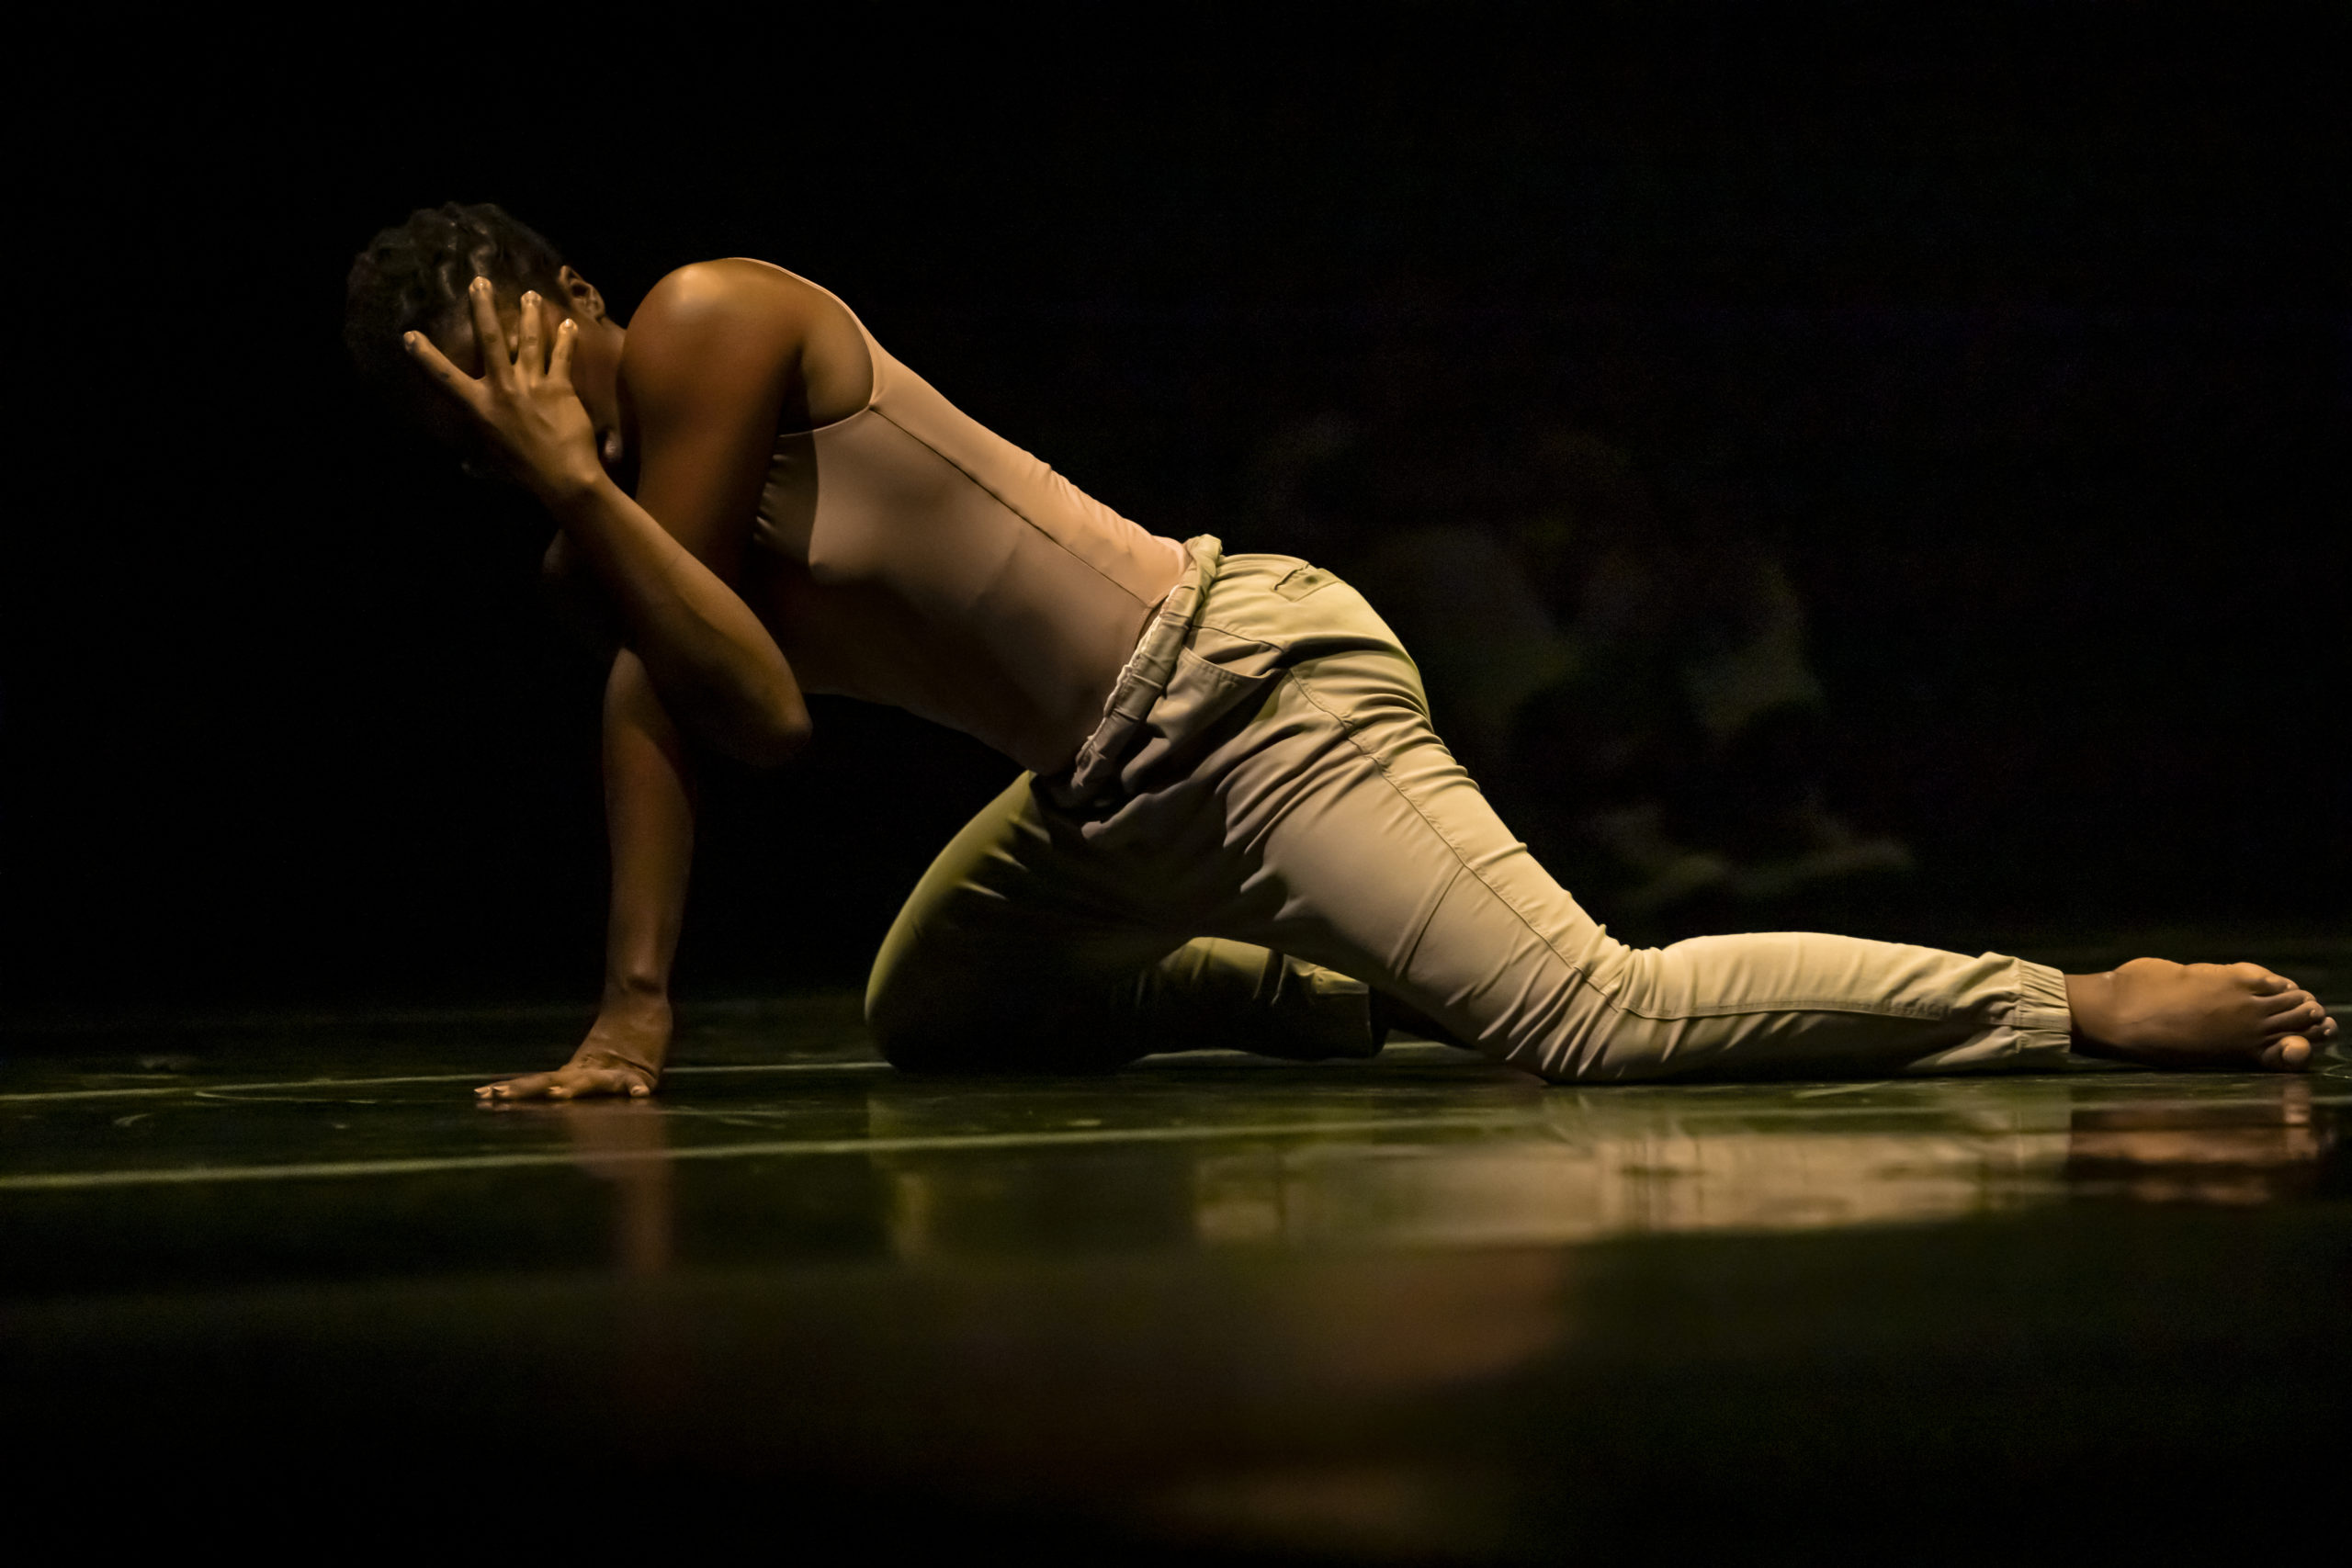 Rolex Arts Weekend at the Baxter Theatre Centre – Cape Town, 8 February 2020Dance: When the Night Comes by Khoudia Touré with dancers from Compagnie La Mer Noir.